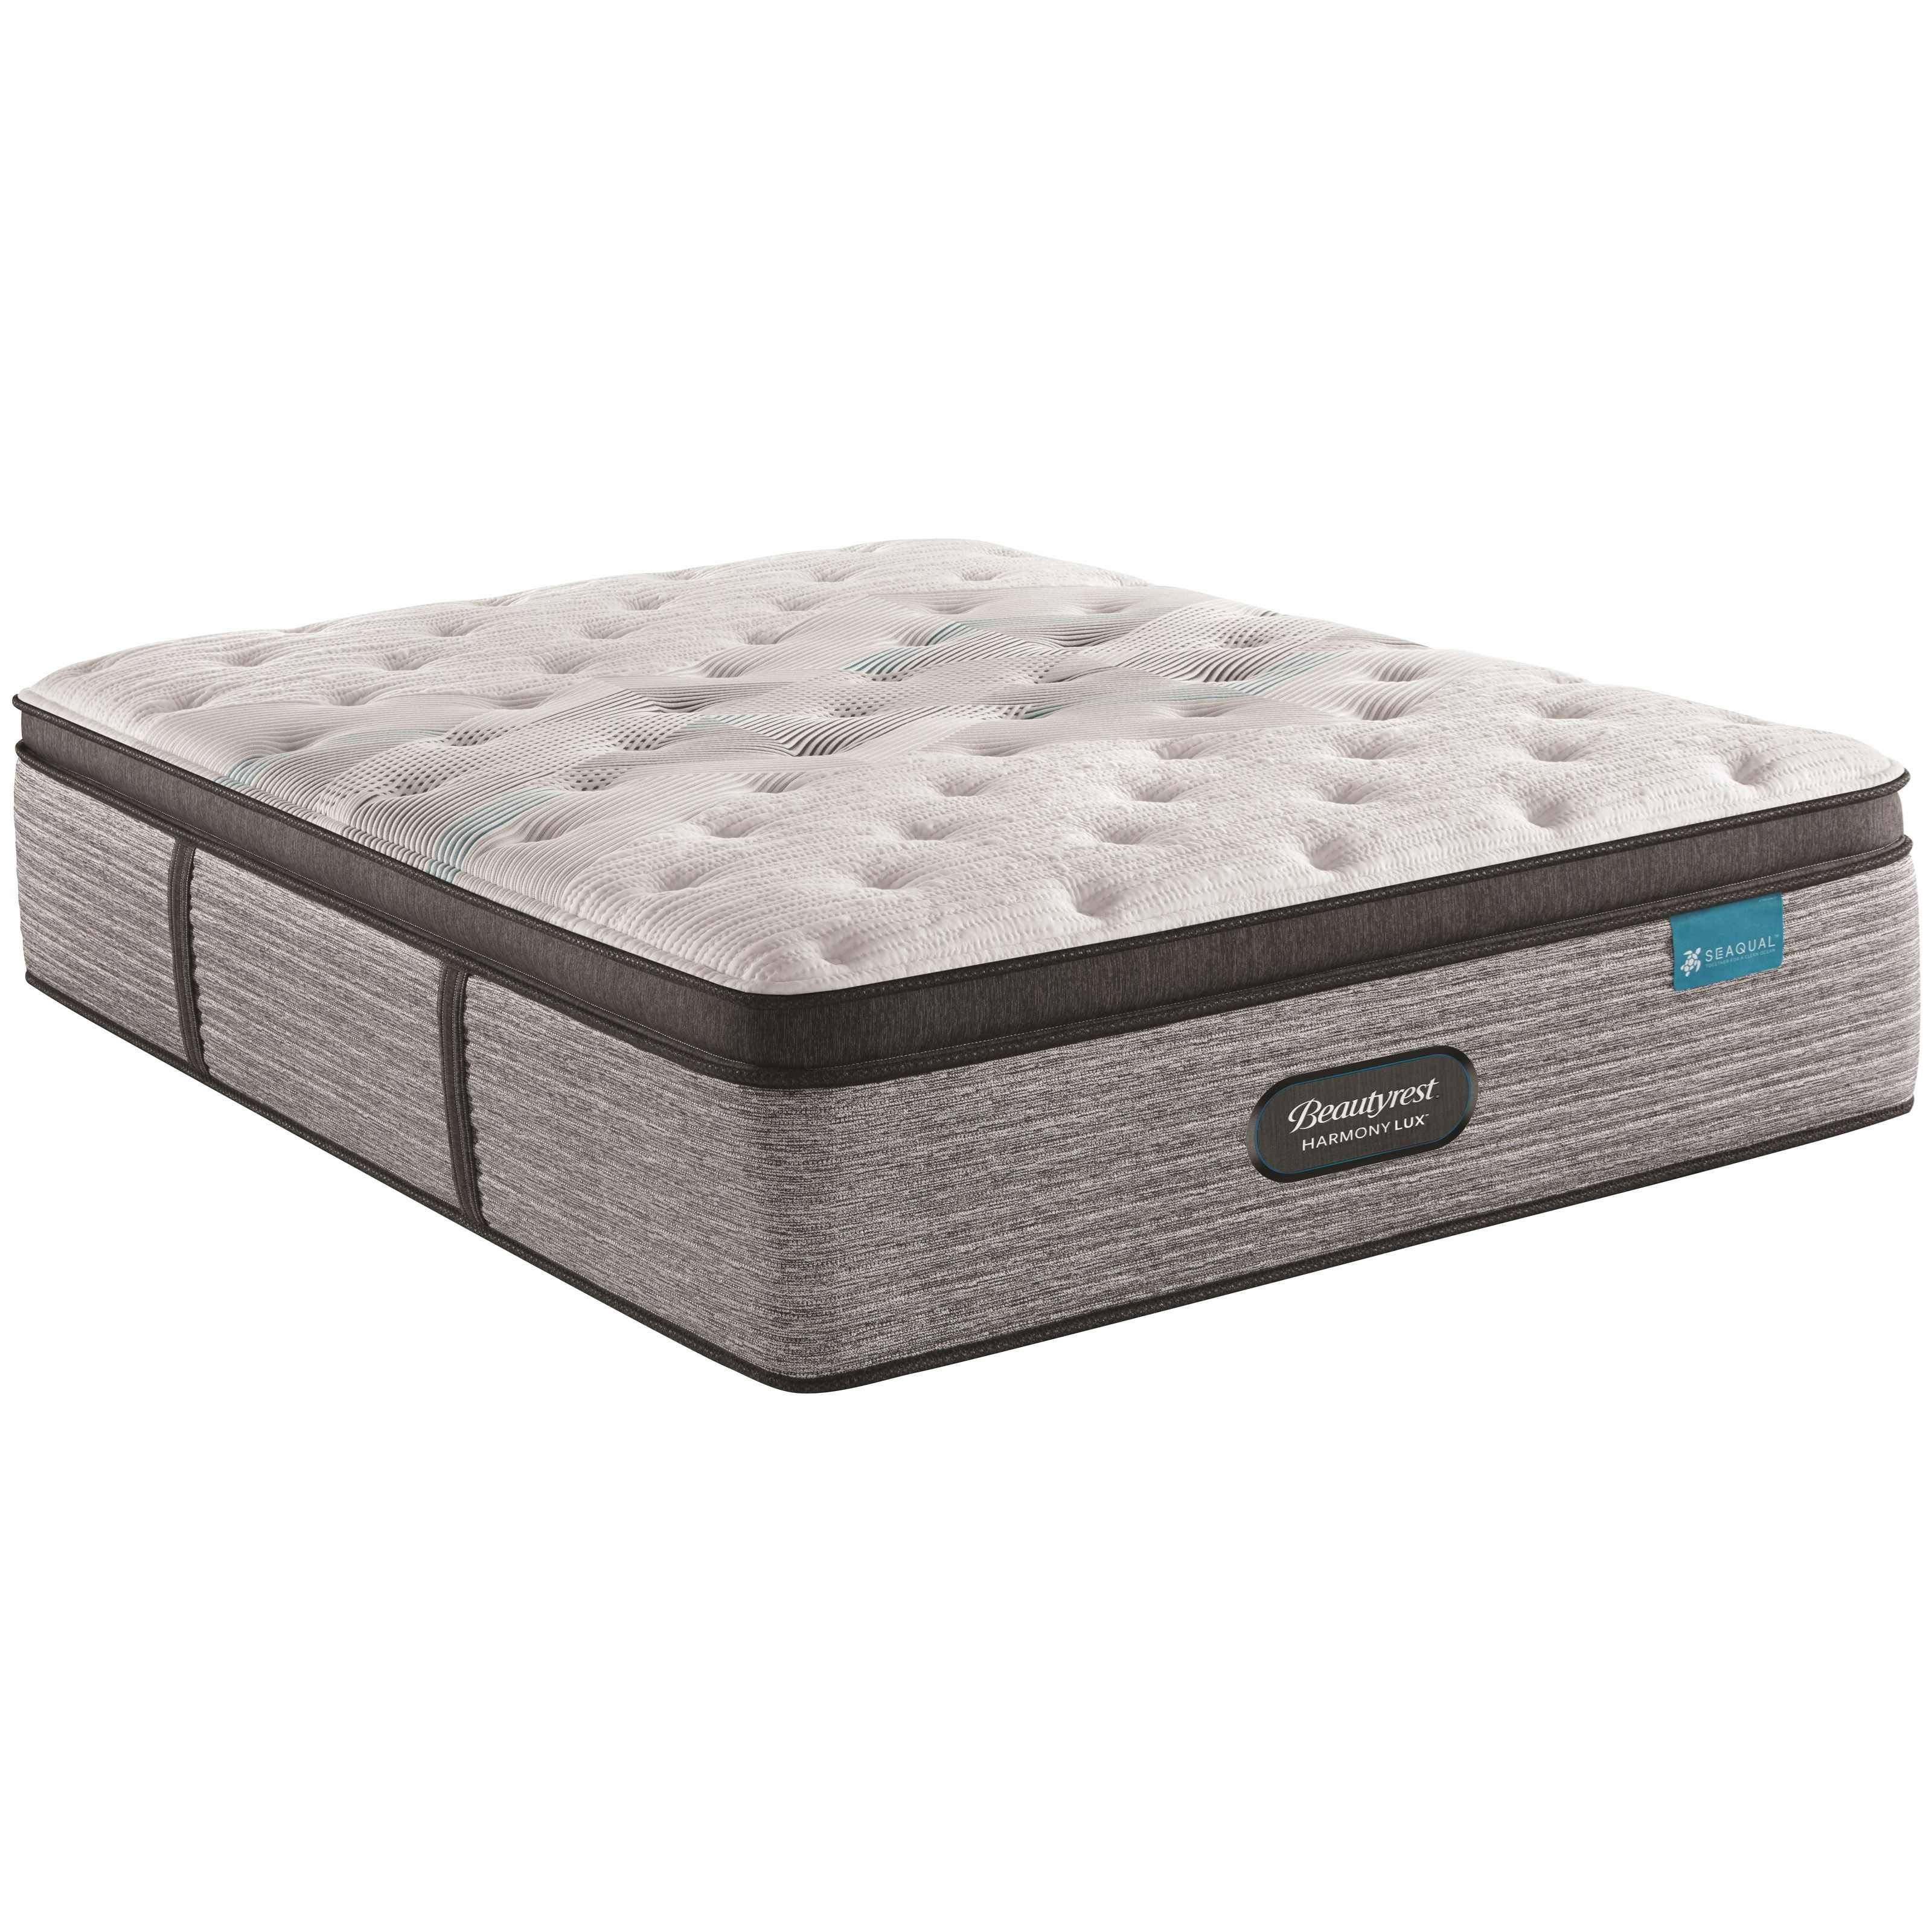 "Carbon Series Plush PT Cal King 15 3/4"" Plush Pillow Top Mattress by Beautyrest at Darvin Furniture"